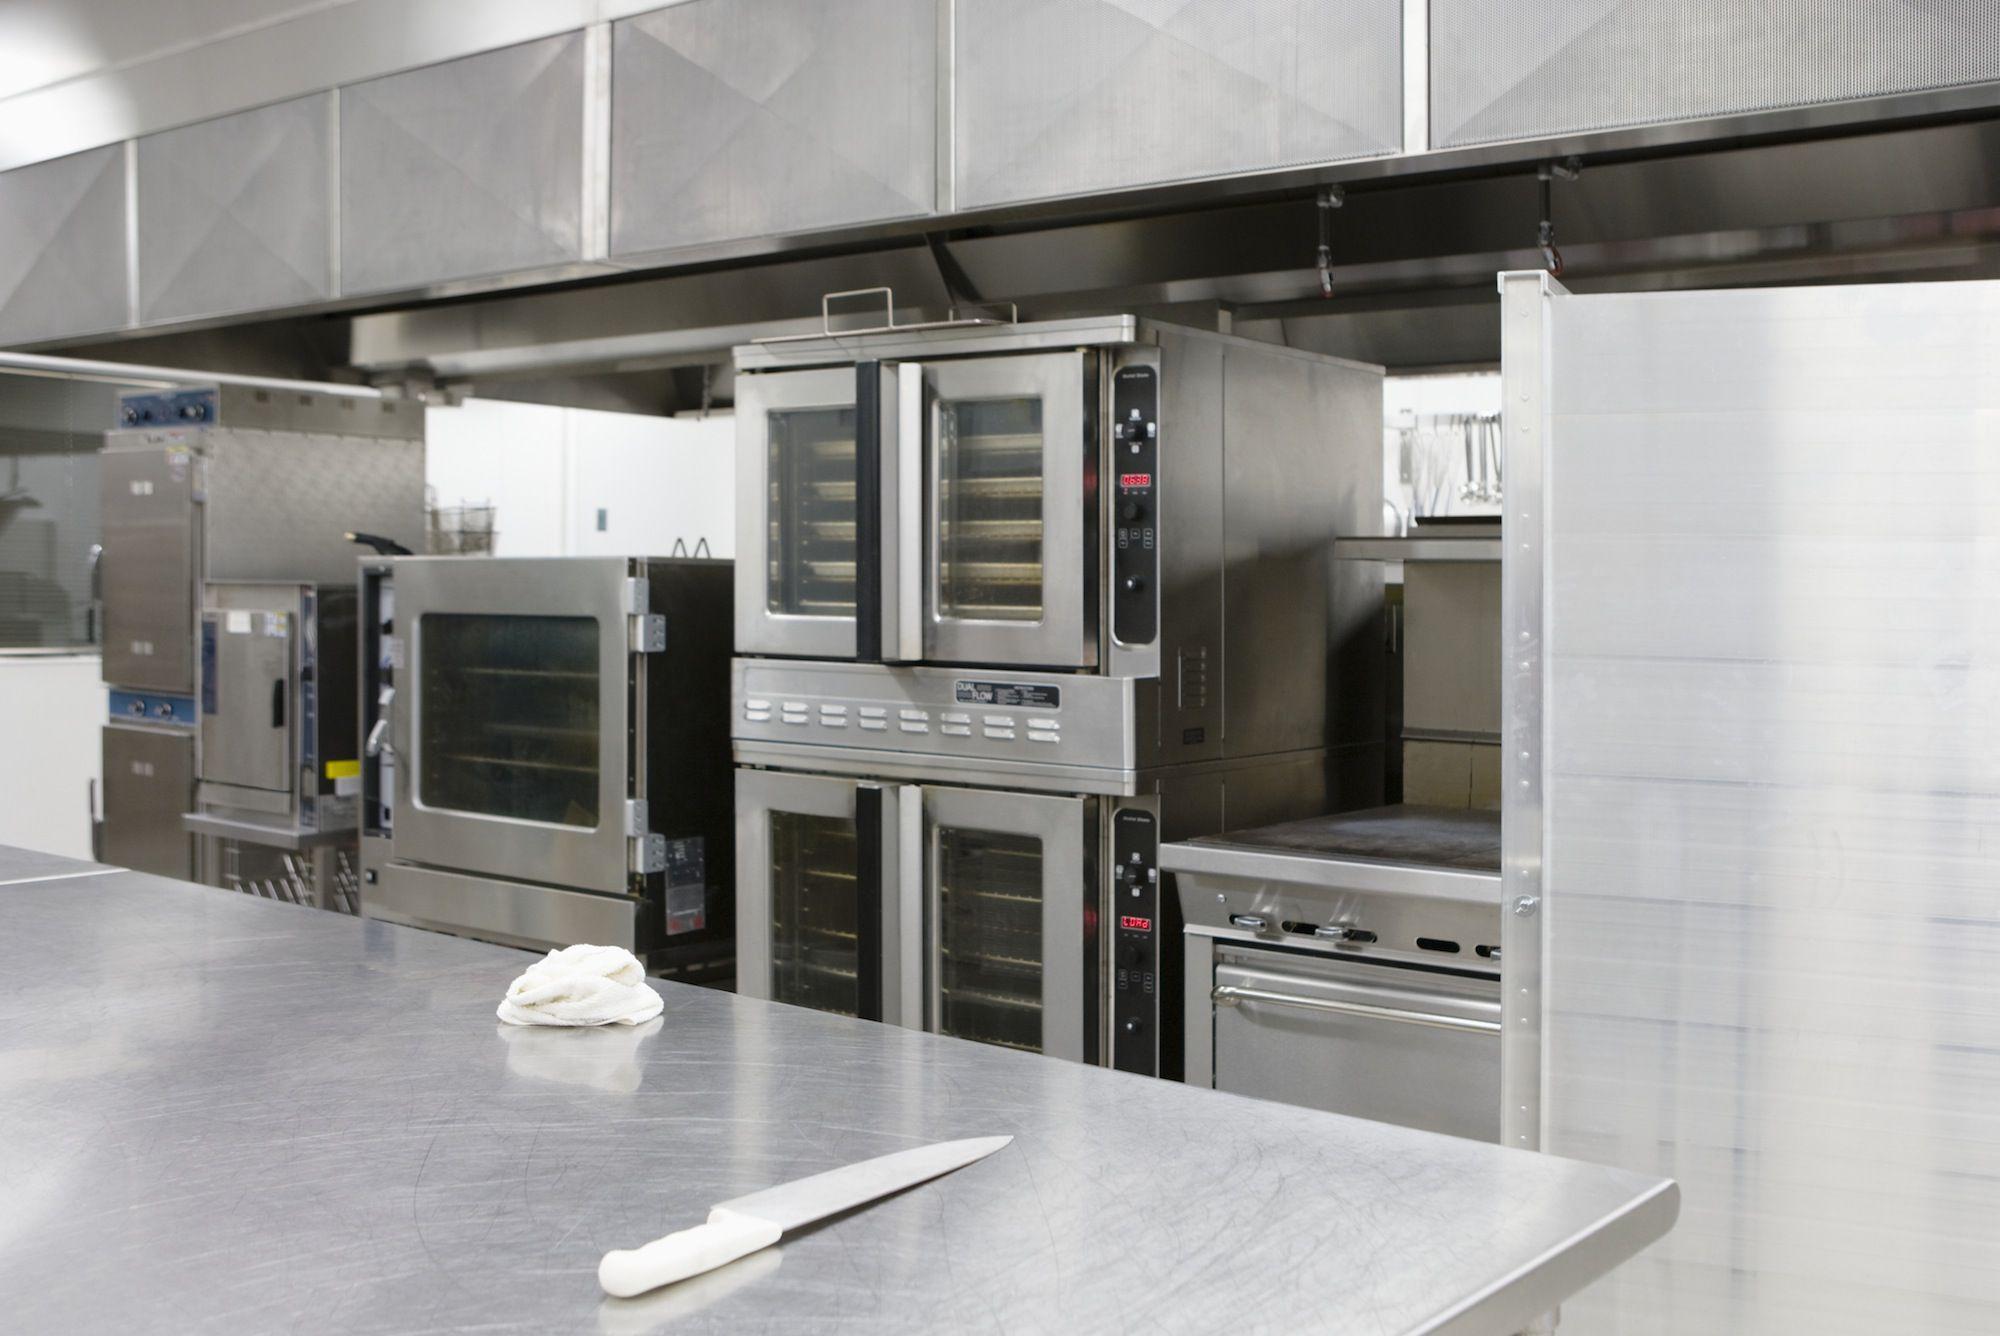 restaurant kitchen setup cost 27 sink commercial grade equipment